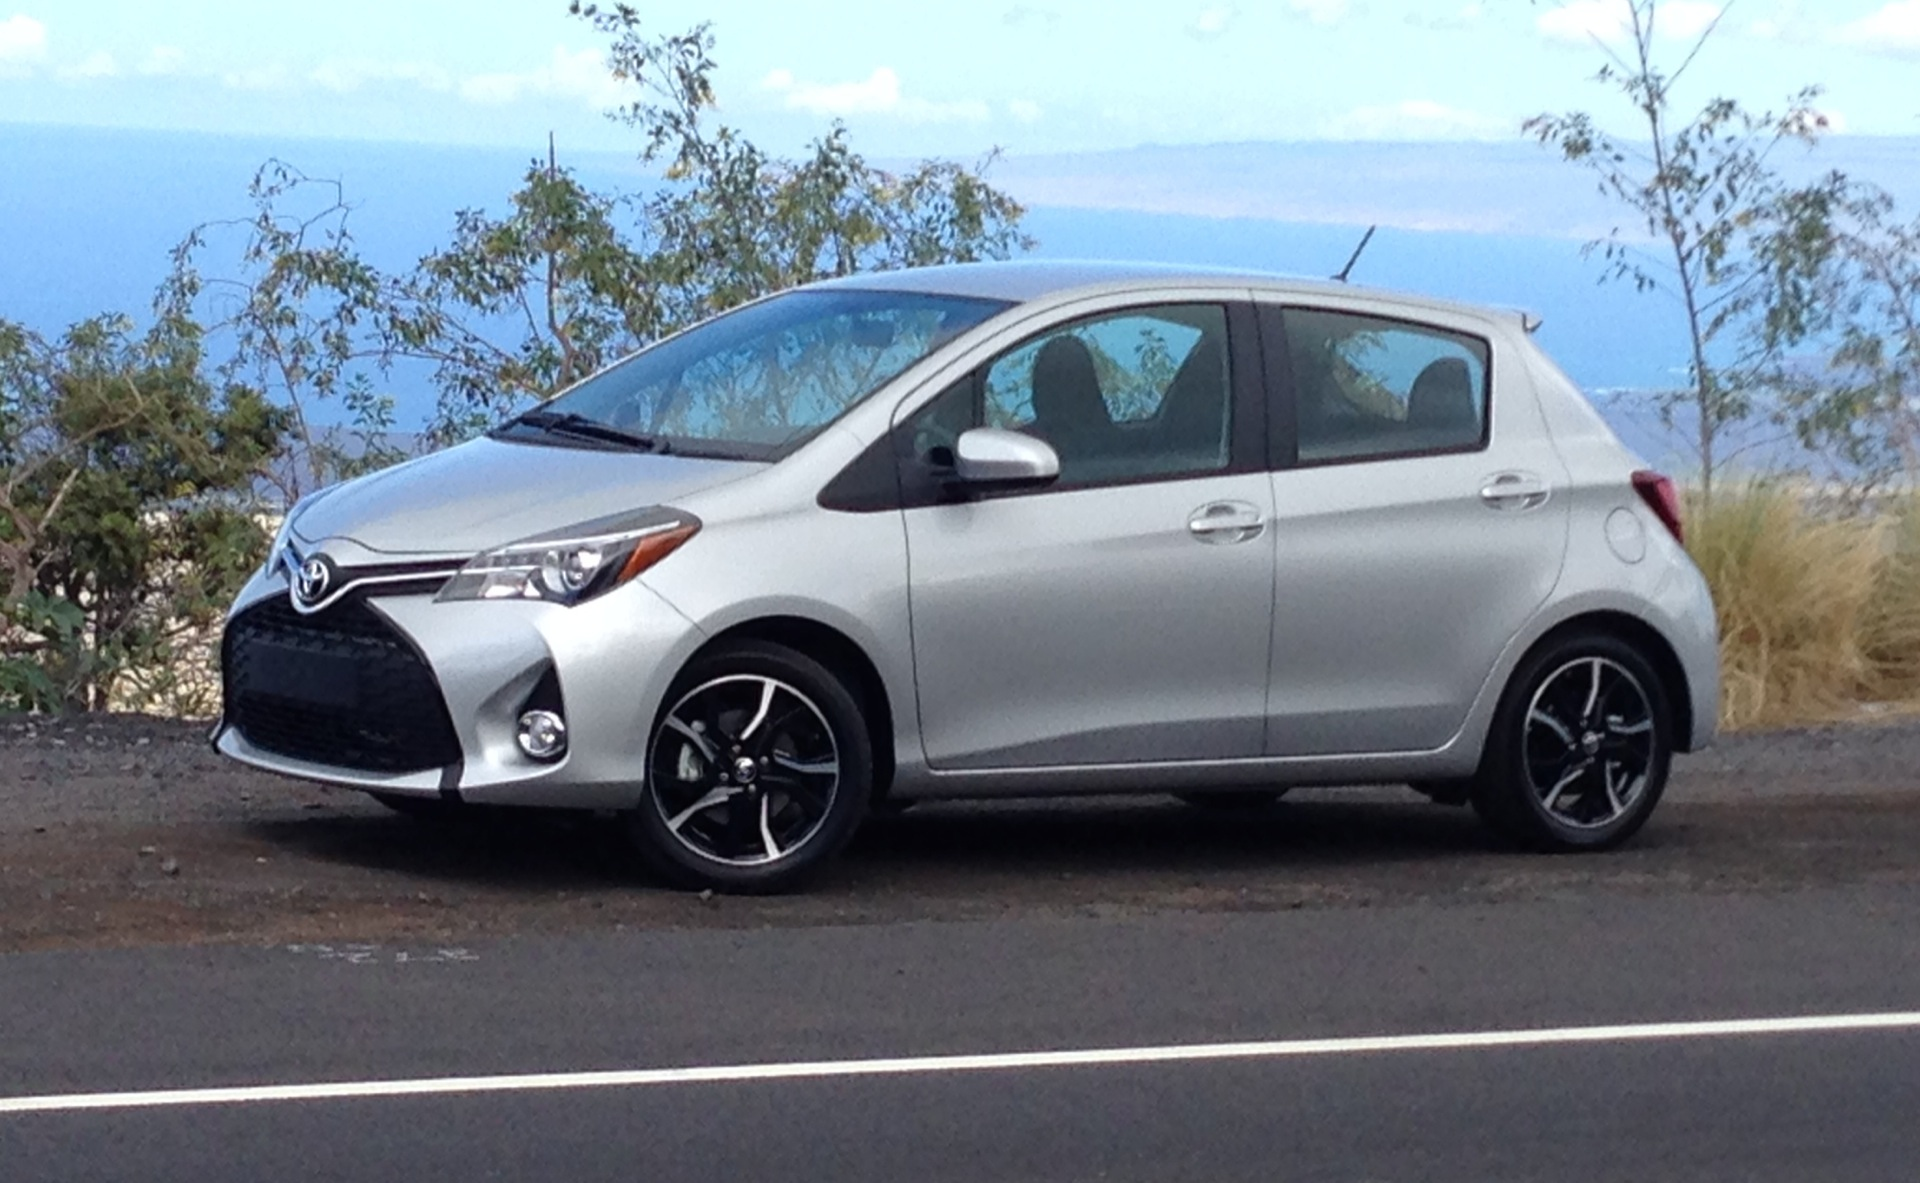 for loaded le bluetooth cars mint used ontario toyota cond sale in scarborough yaris